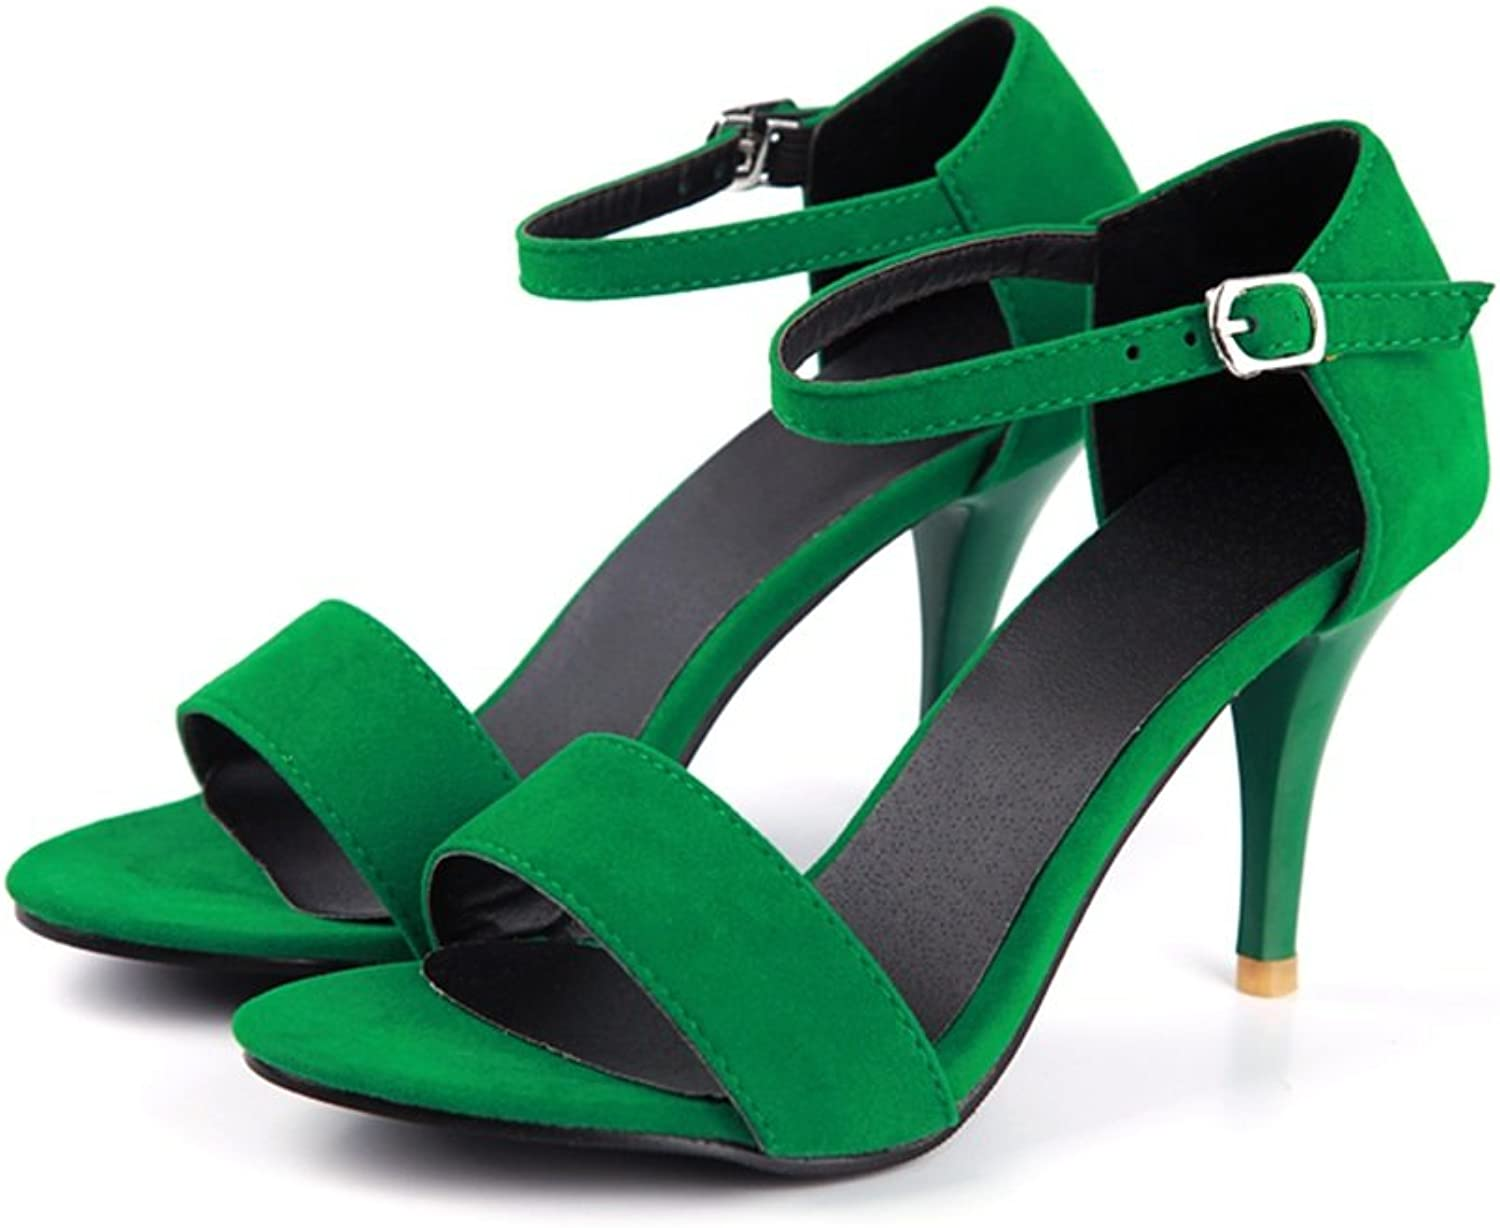 Jiang Women's shoes Suede Spring Summer Sandals Wedge Heel Open Toe Buckle for Casual Dress Green Black Purple Sandals